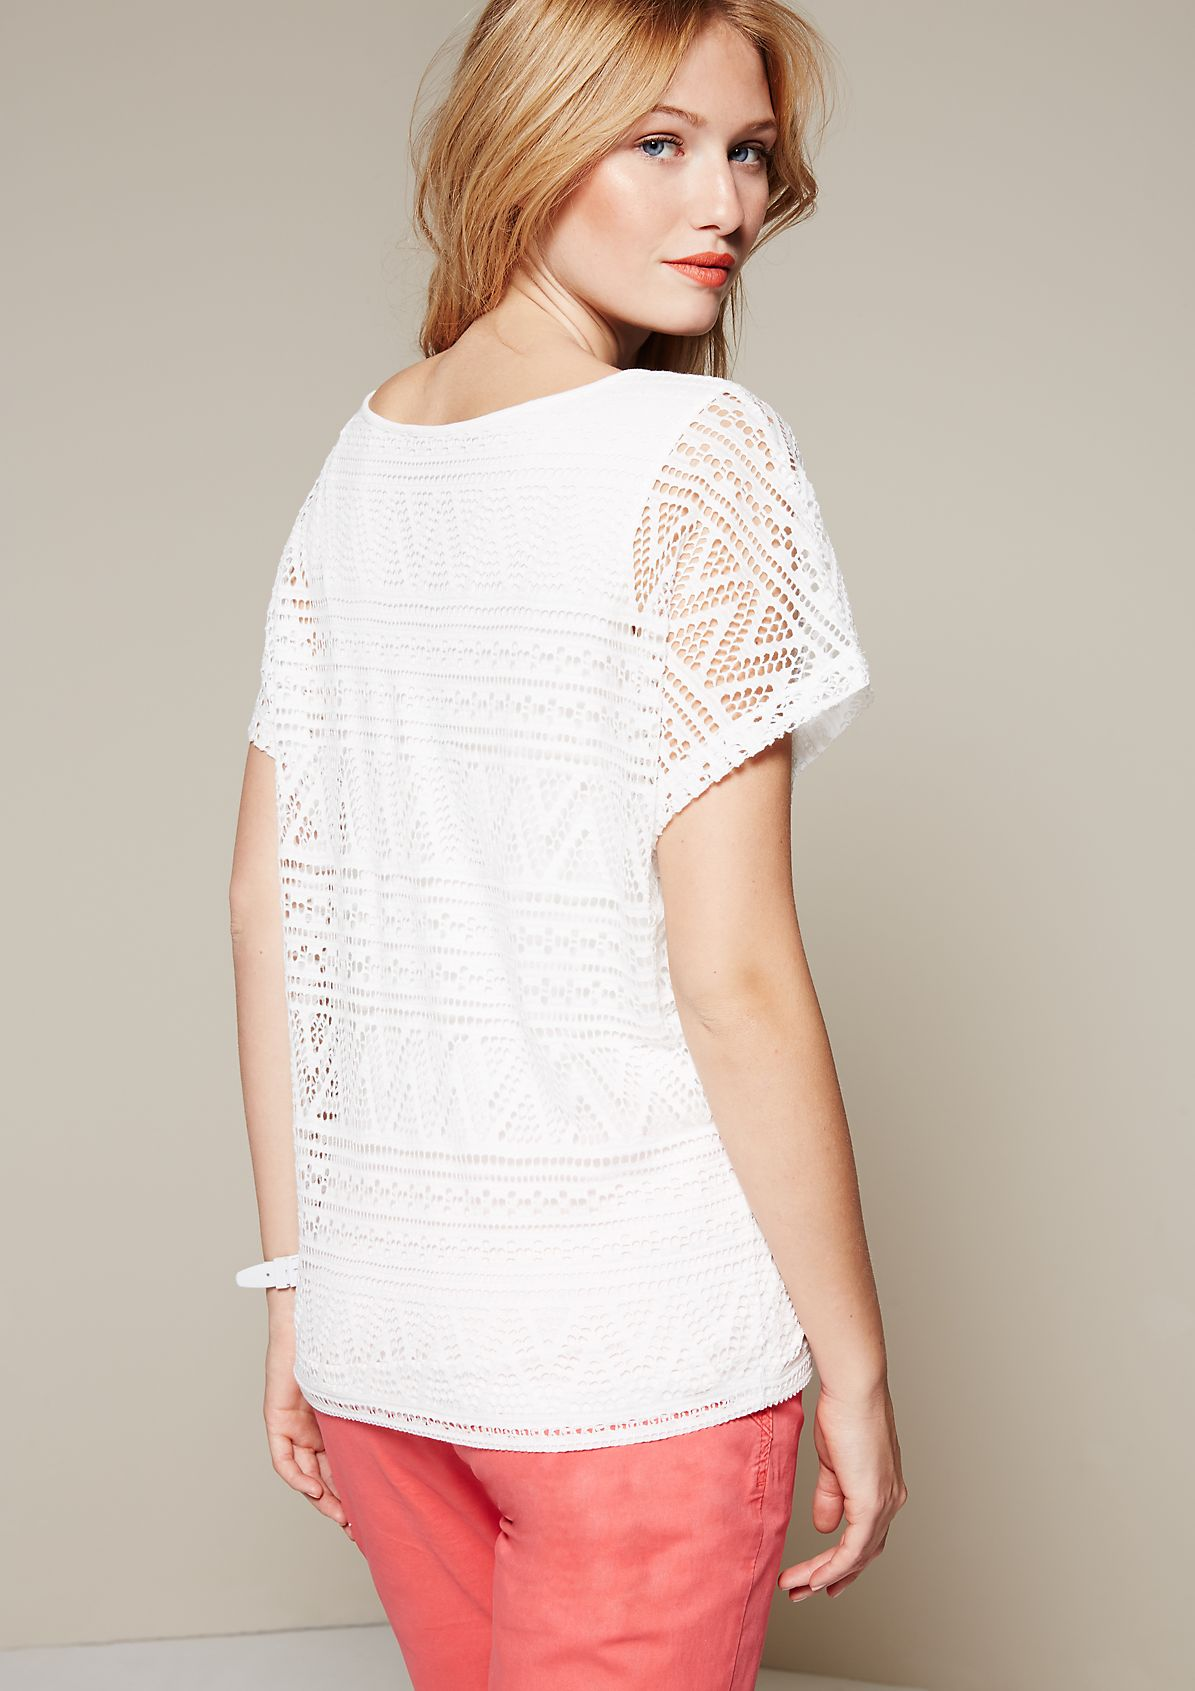 Glamorous lace top with fabulous details from s.Oliver